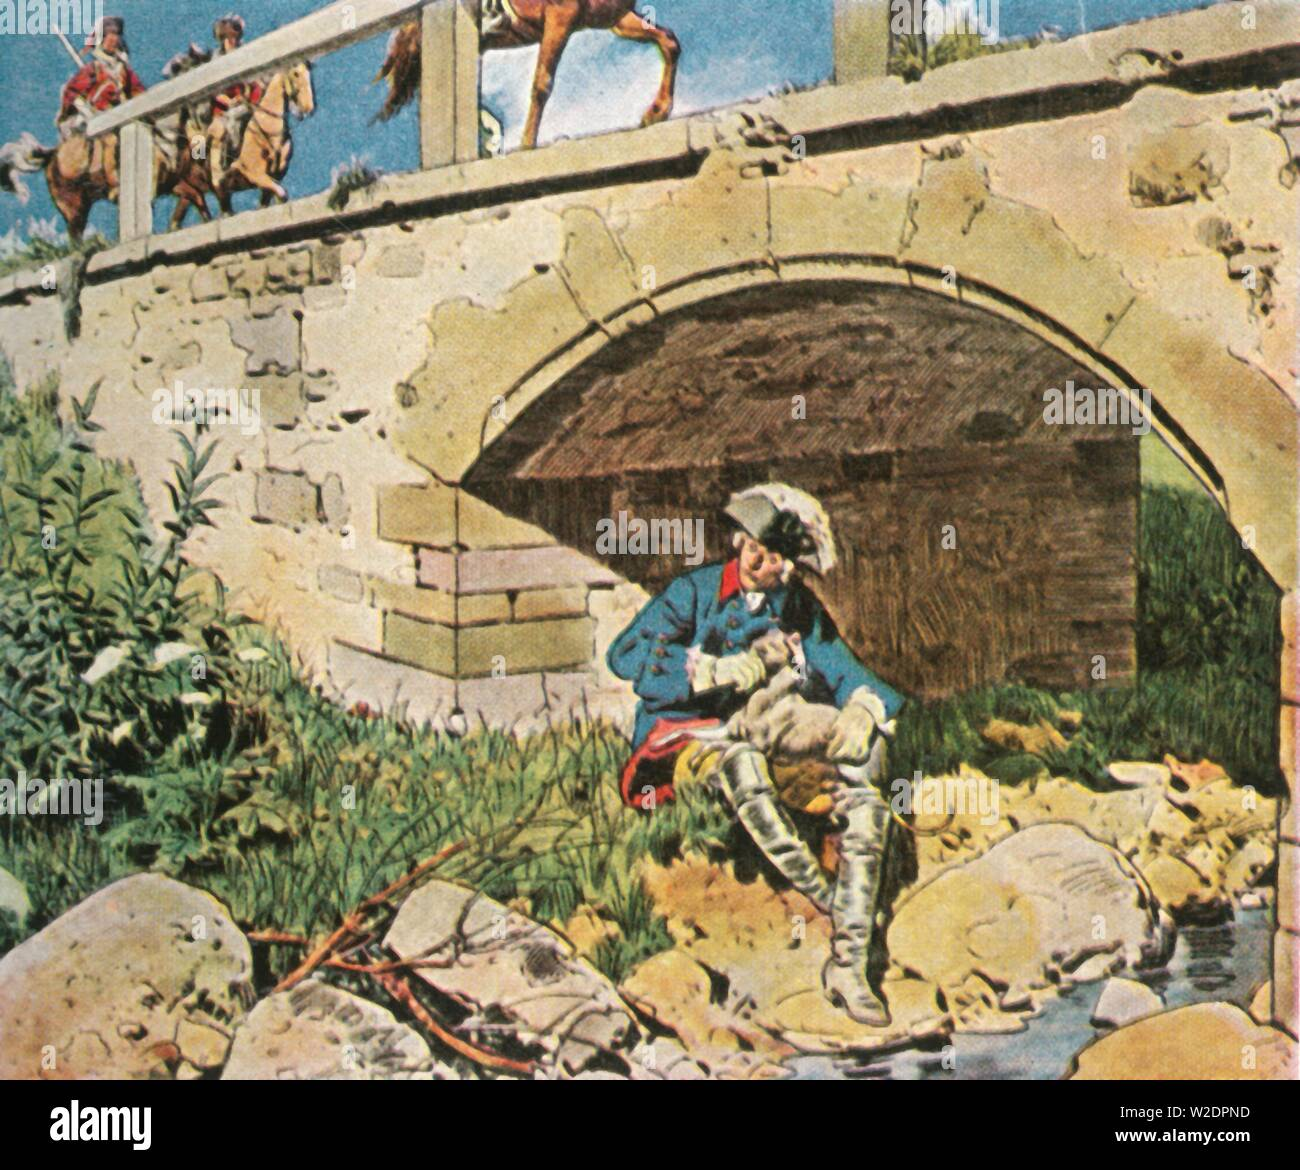 """Frederick the Great evades capture, 1745, (1936). 'Friedrich Der Grosse Entgeht Der Gefangennahme, 1745'. King Frederick the Great of Prussia hides under a bridge with his dog. Frederick (1712-1786) is known for his many military victories and for his success against great odds in the Seven Years' War. From """"Bilder Deutscher Geschichte"""", (Pictures of German History), No.12, cigarette card album. [Cigaretten-Bilderdienst, Altona-Bahrenfeld, Hamburg, Germany, 1936] - Stock Image"""